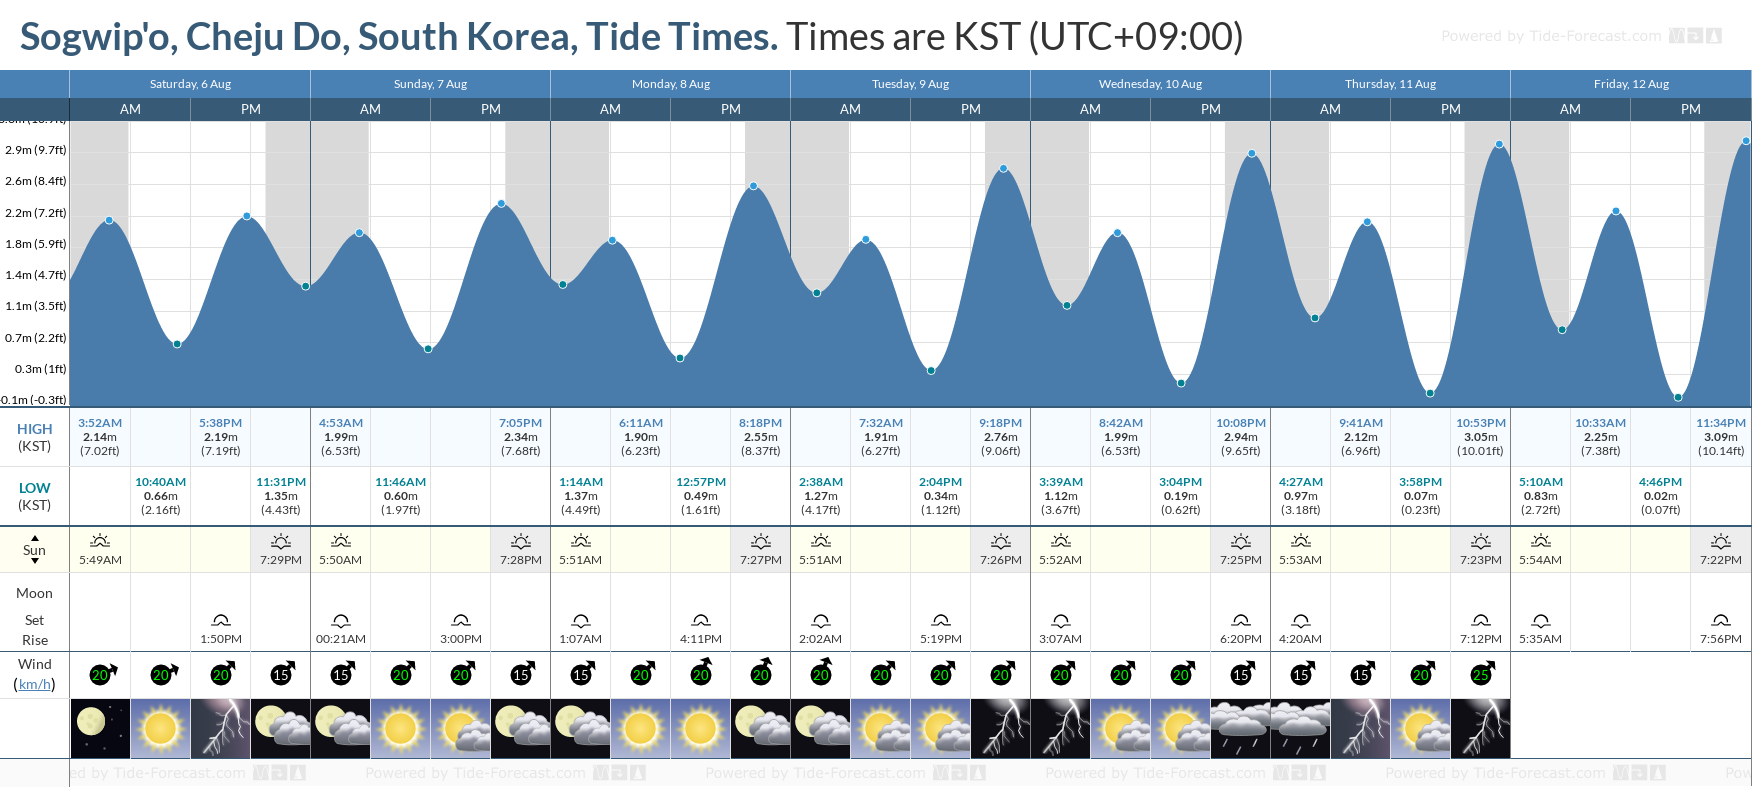 Sogwip'o, Cheju Do, South Korea Tide Chart including high and low tide tide times for the next 7 days